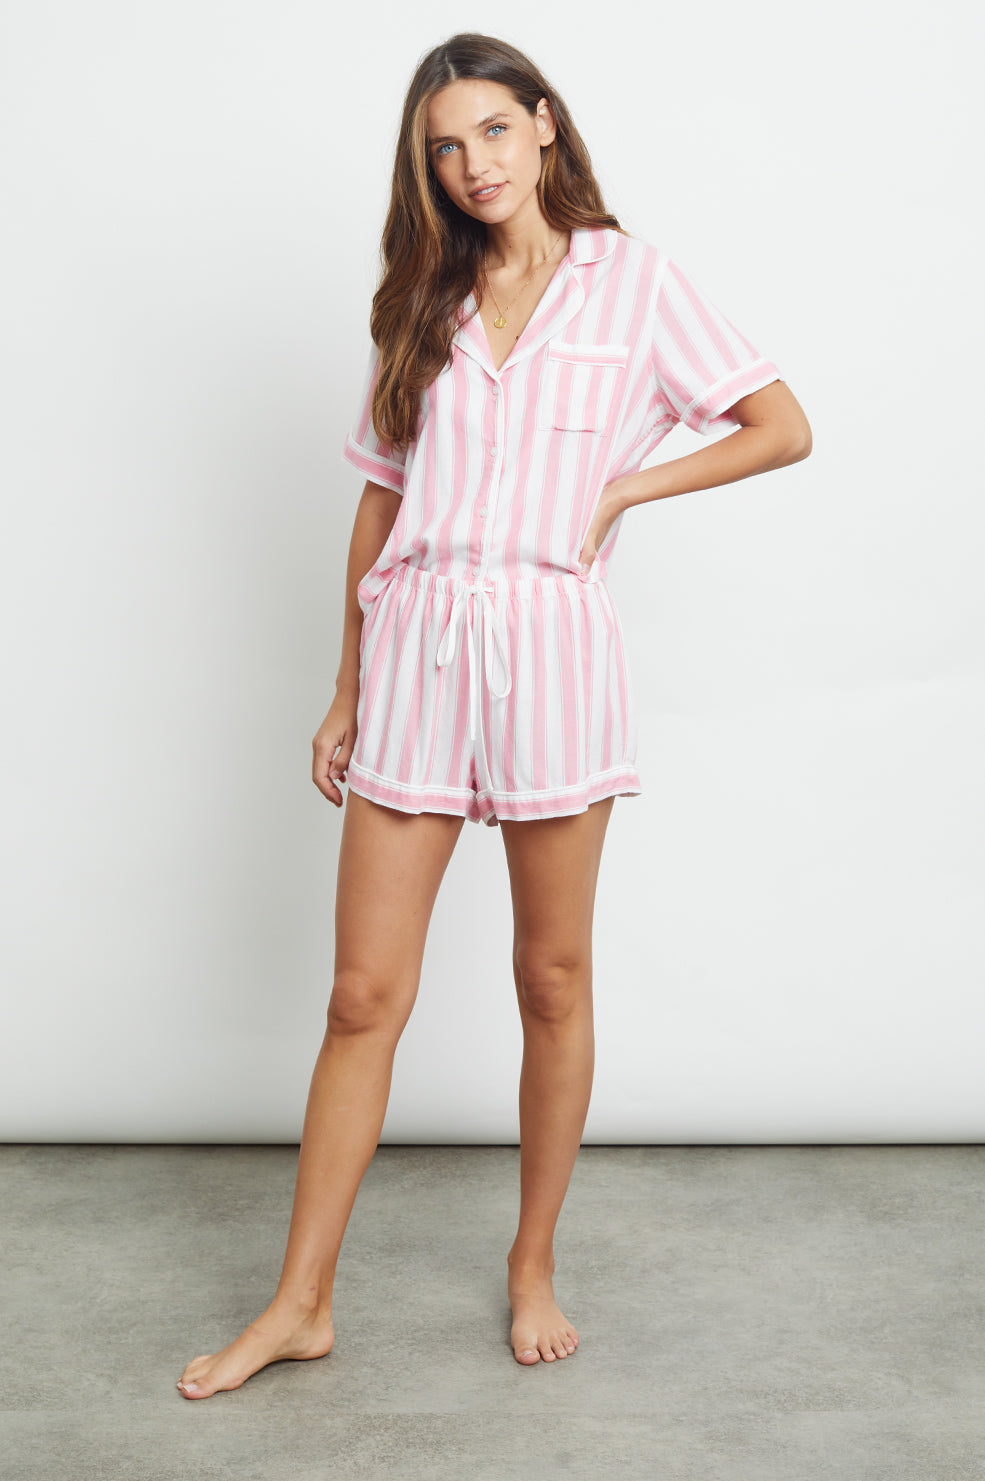 darcie bubblegum white stripe pajama shirt and shorts front tucked-in